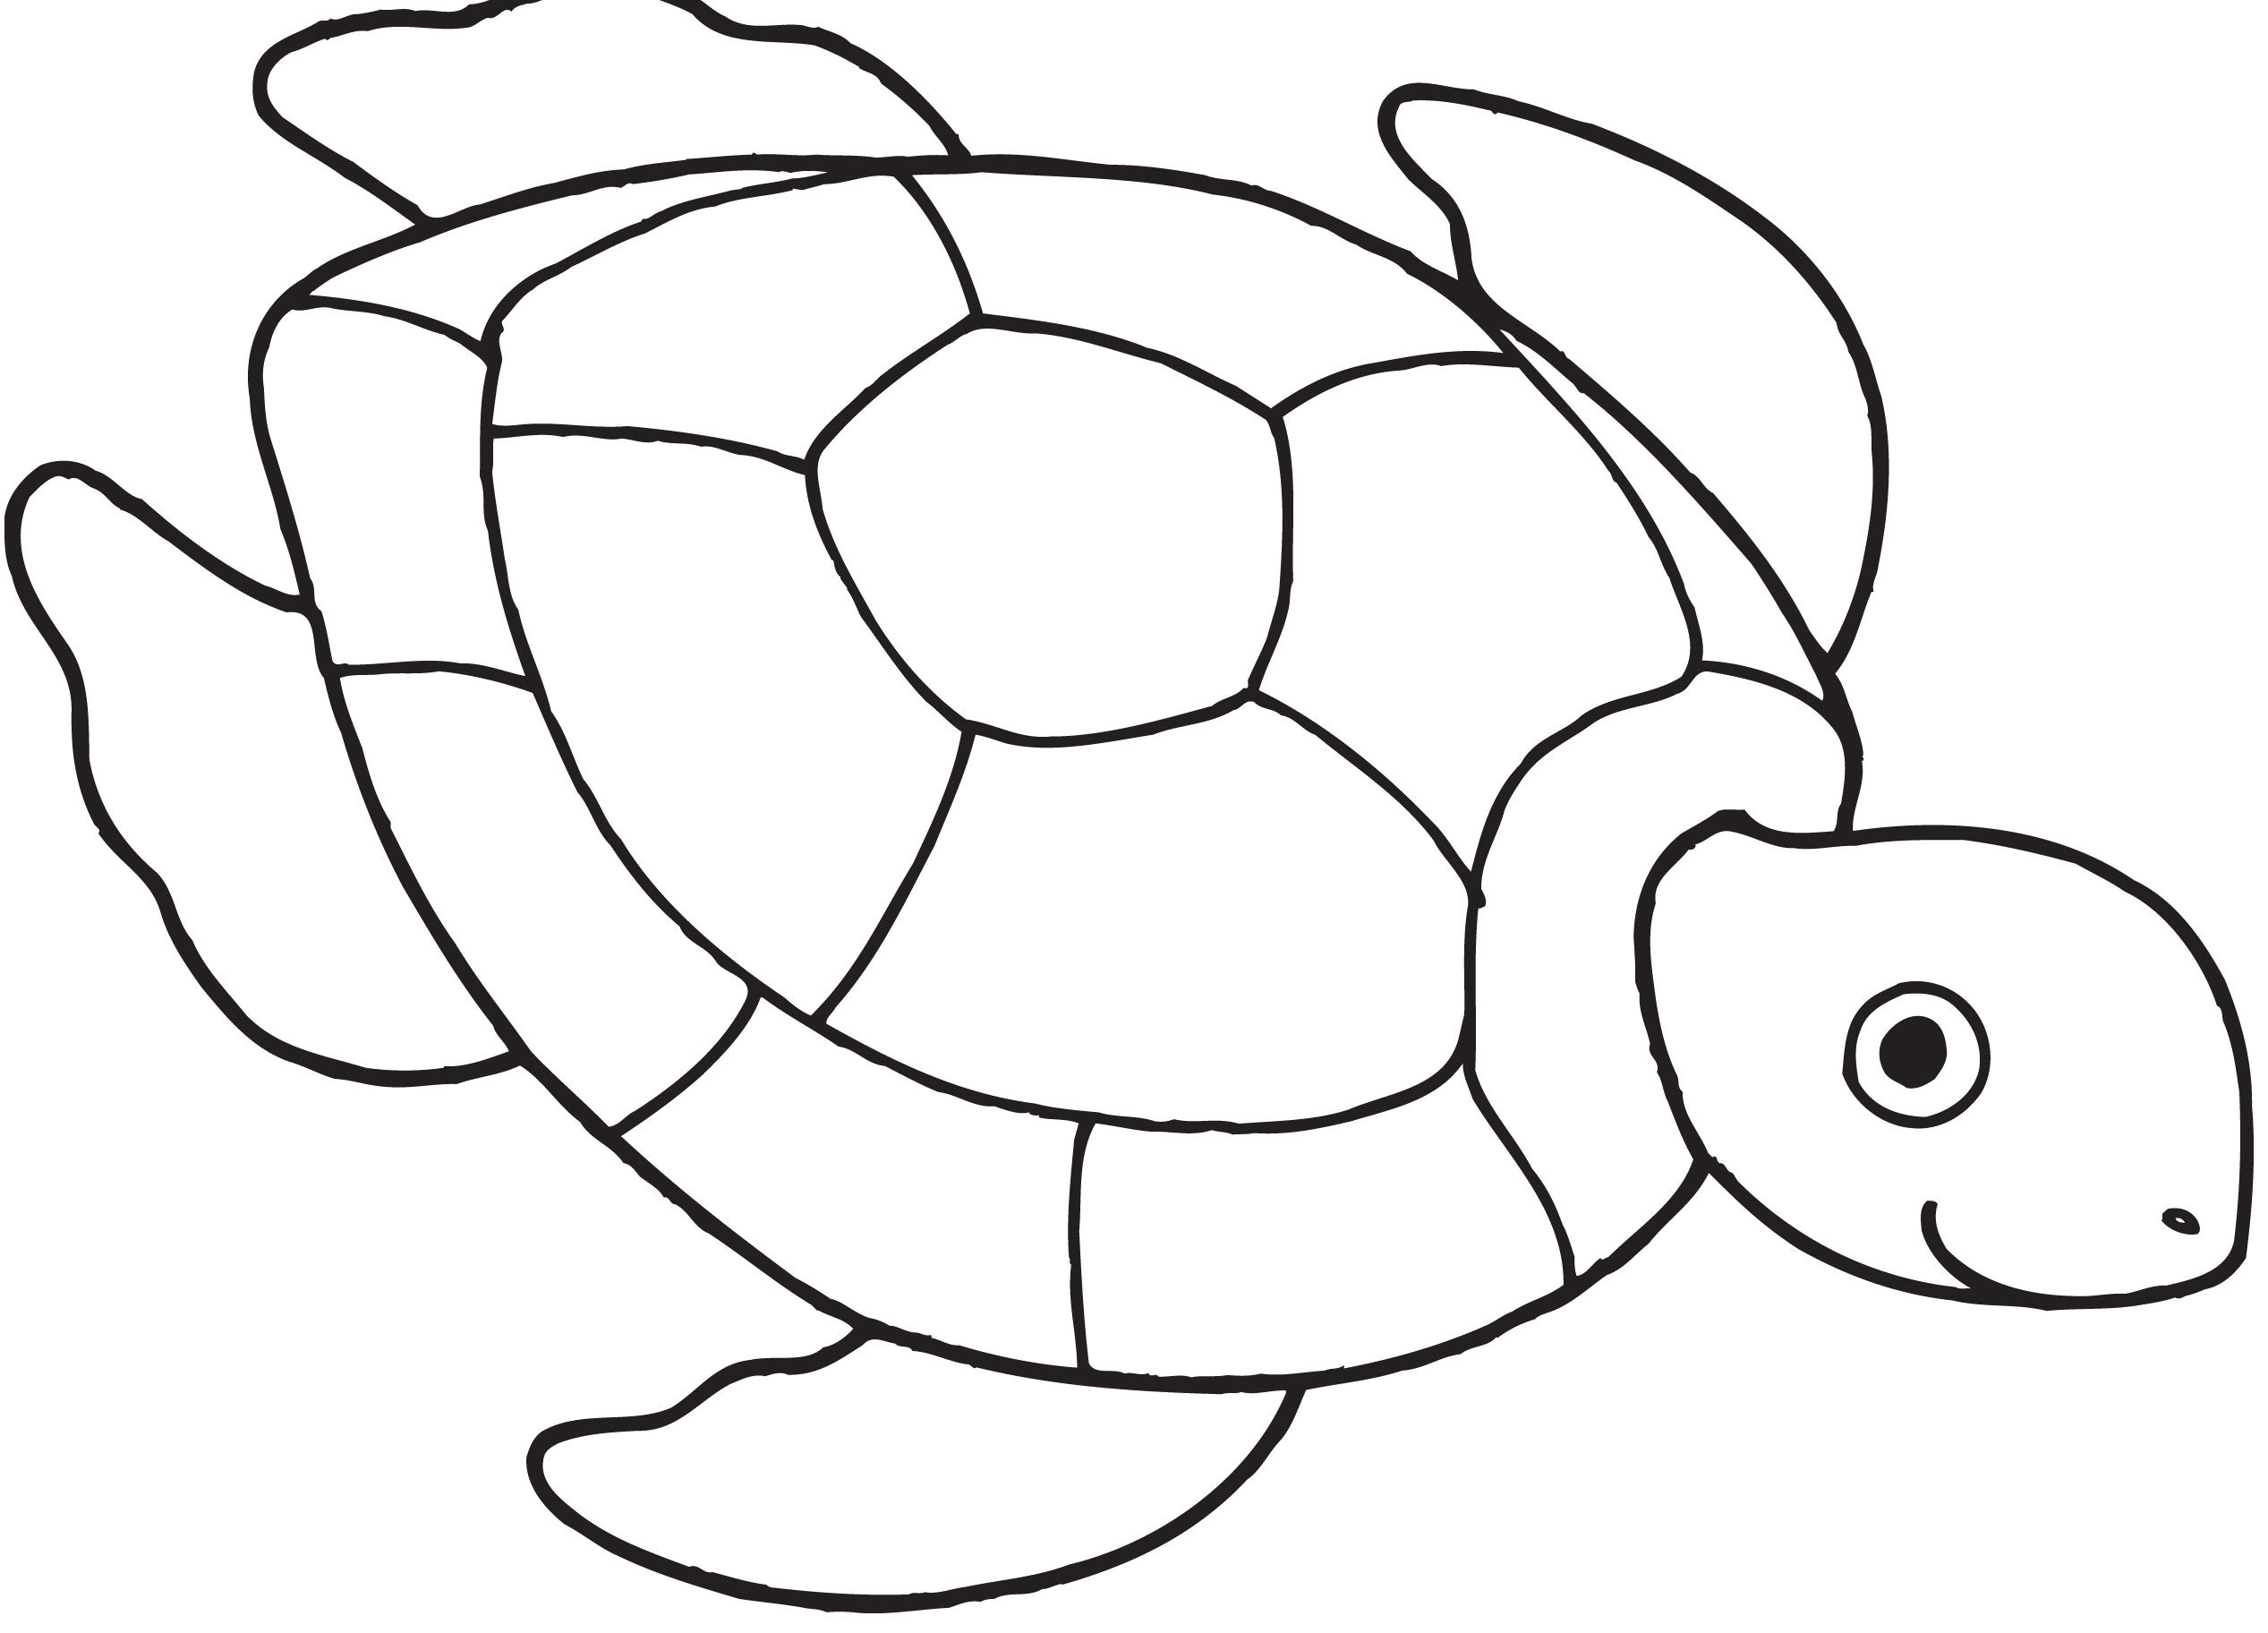 Sea turtle coloring page tweeting cities free coloring